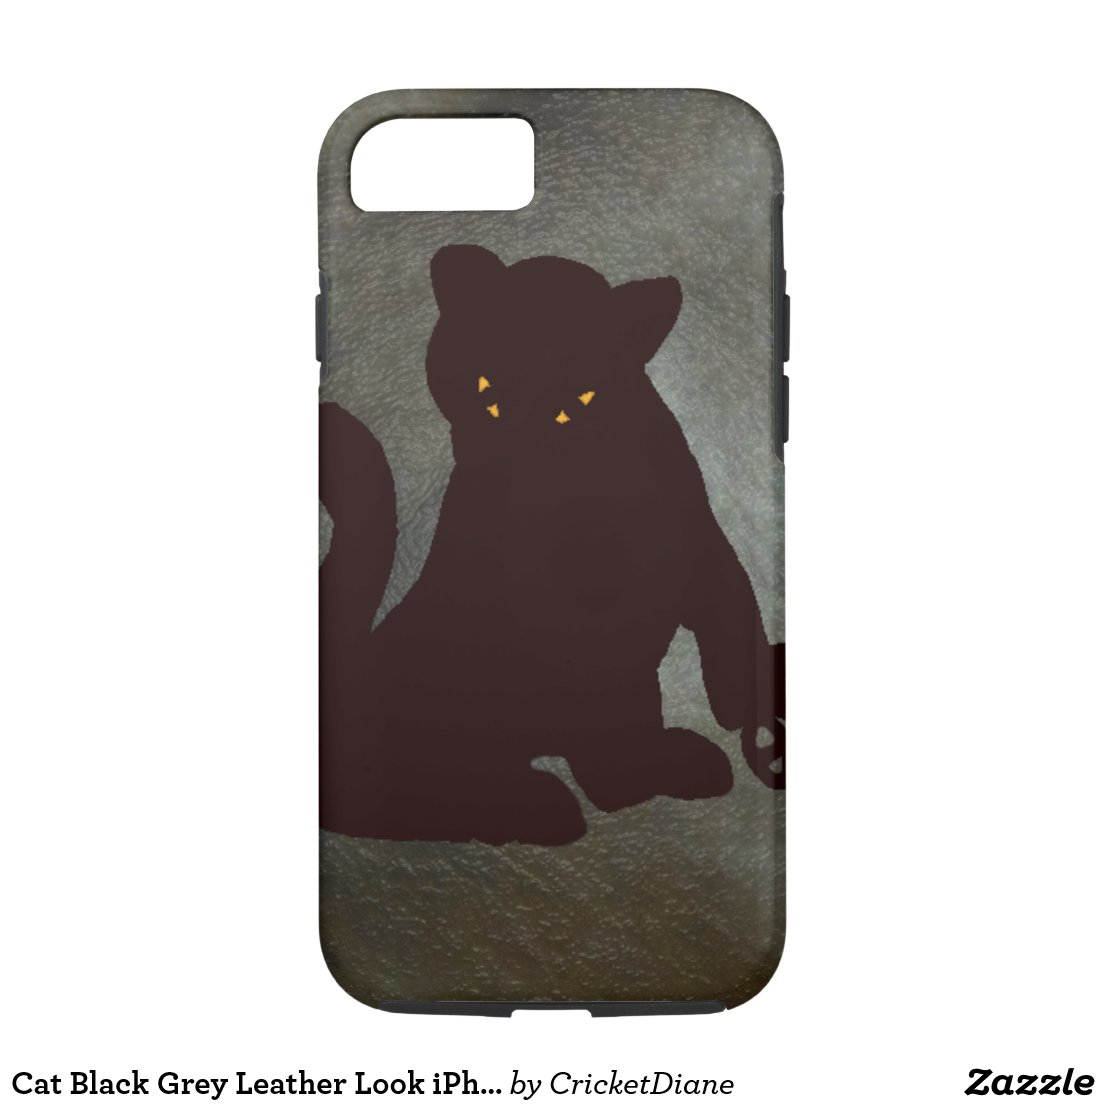 Cat Black Grey Leather Look iPhone Case